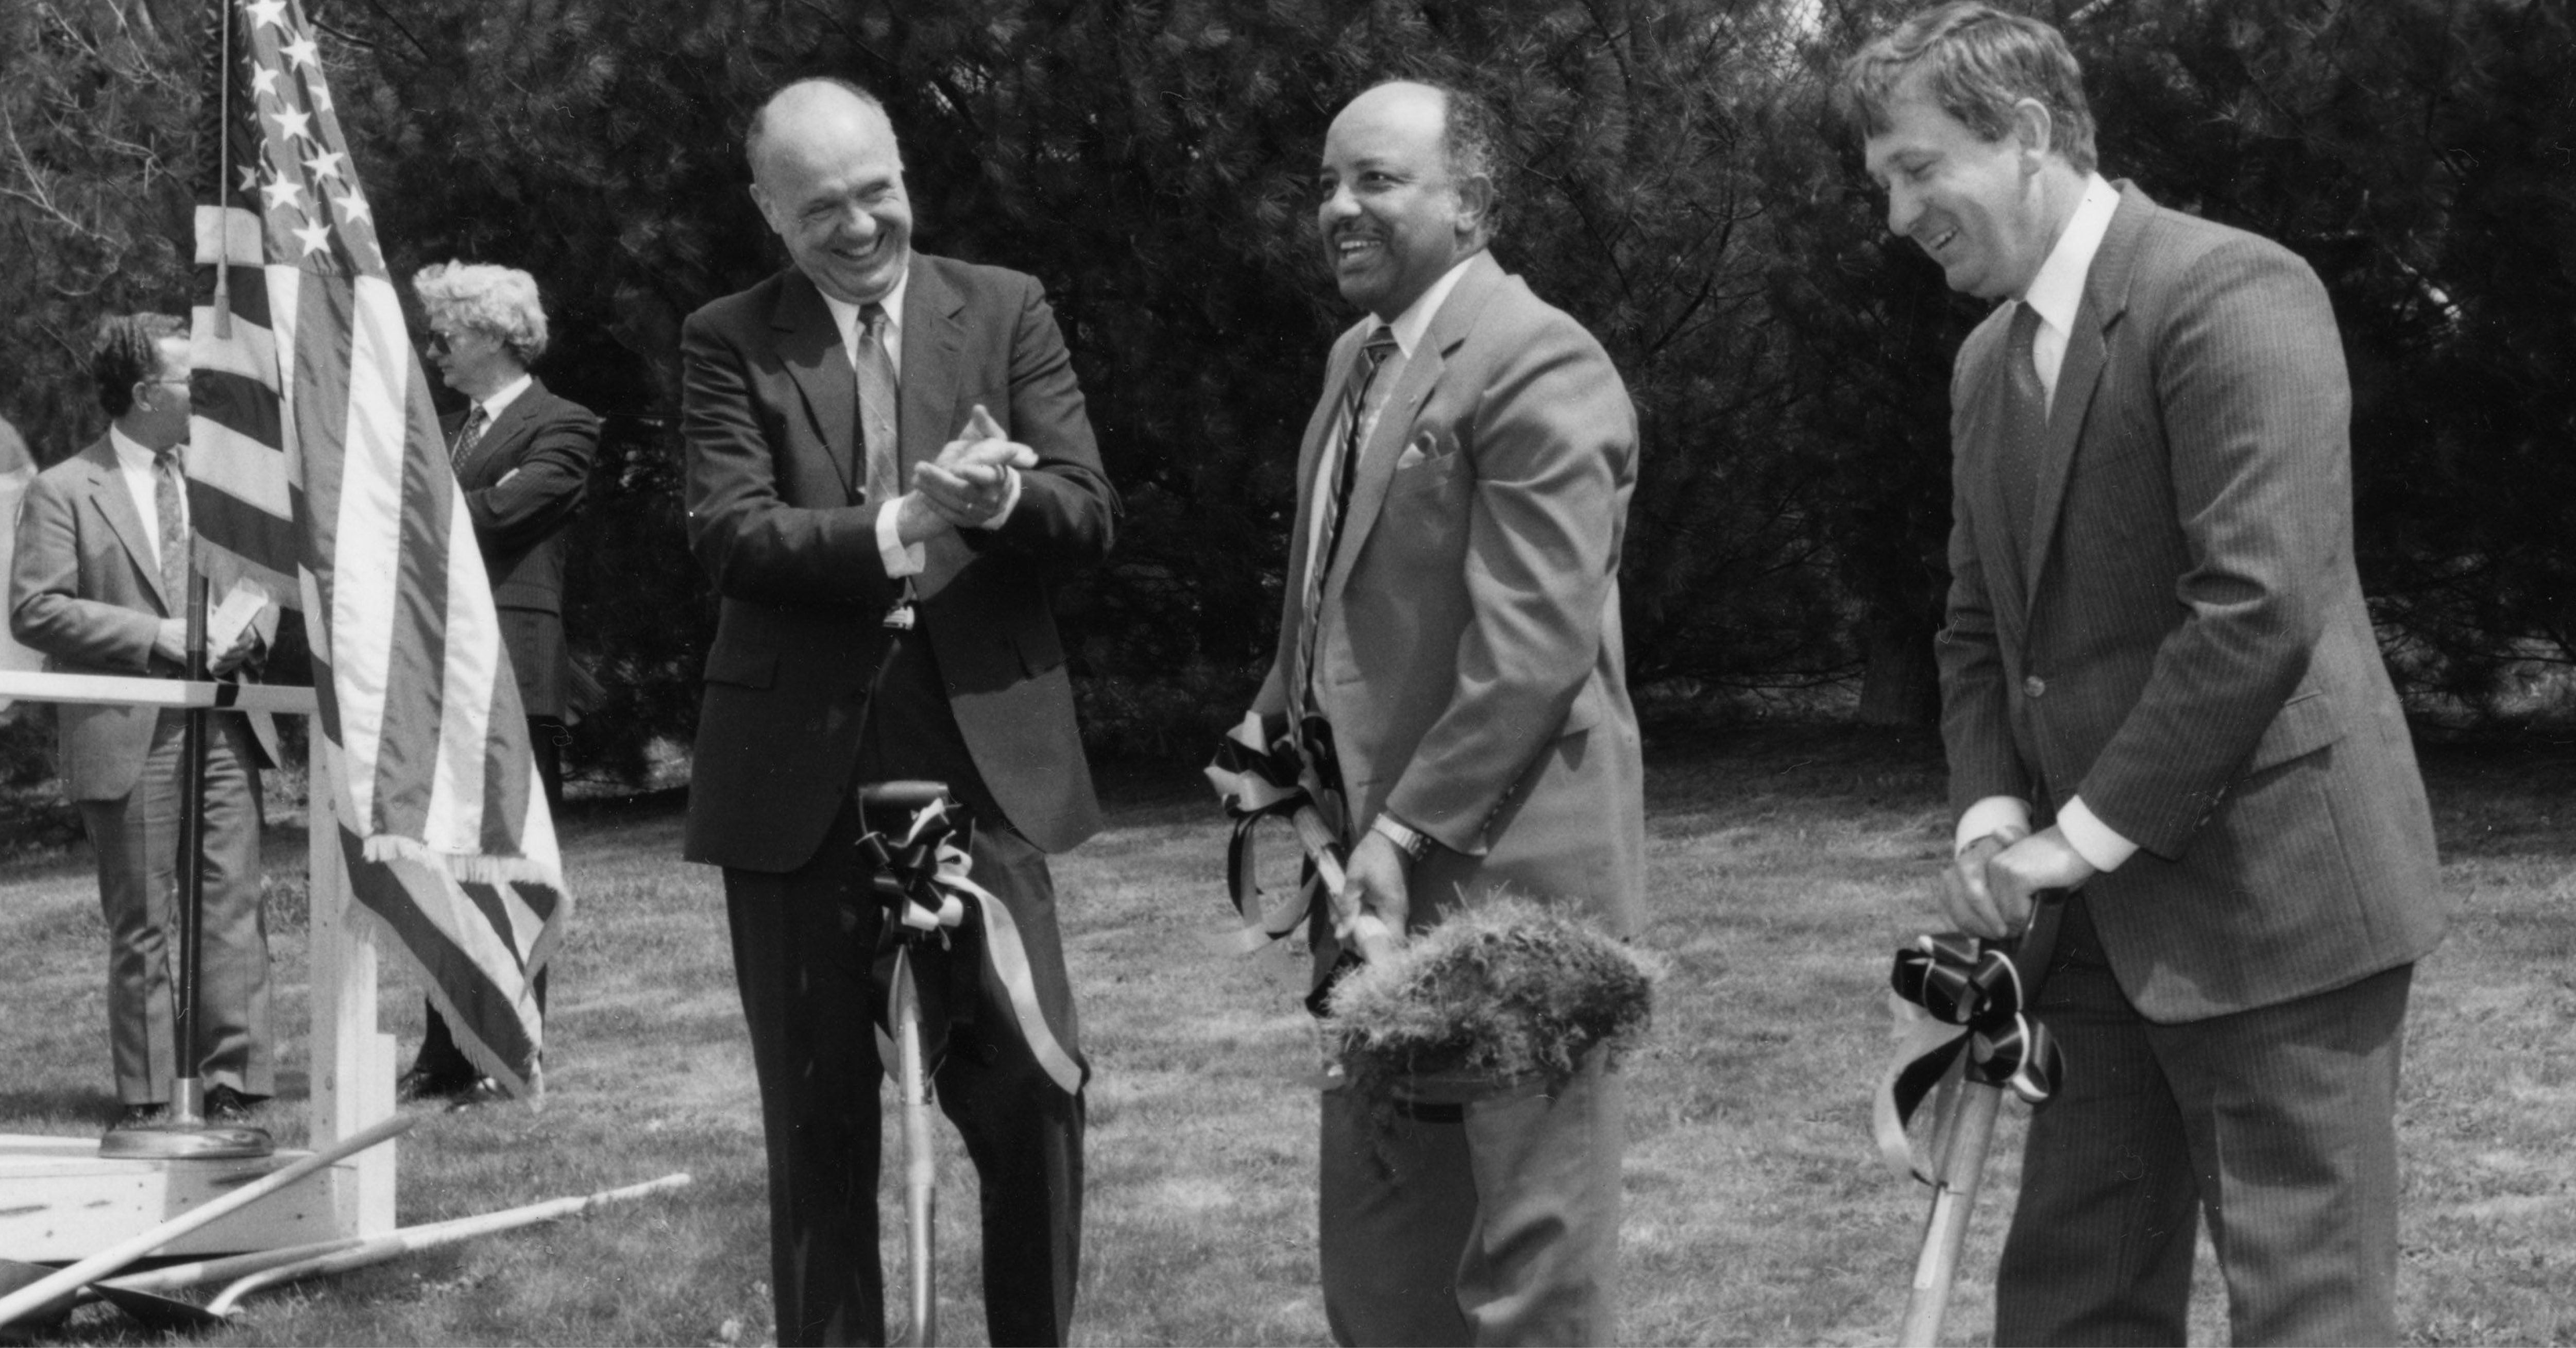 This image shows the groundbreaking ceremony for Thelma C. Raley Hall, completed 1990, at Appalachian State University (1967-current) in April 1988. Chancellor John E. Thomas (1979-1993) stands second from the left while Board of Trustee member Richard Da